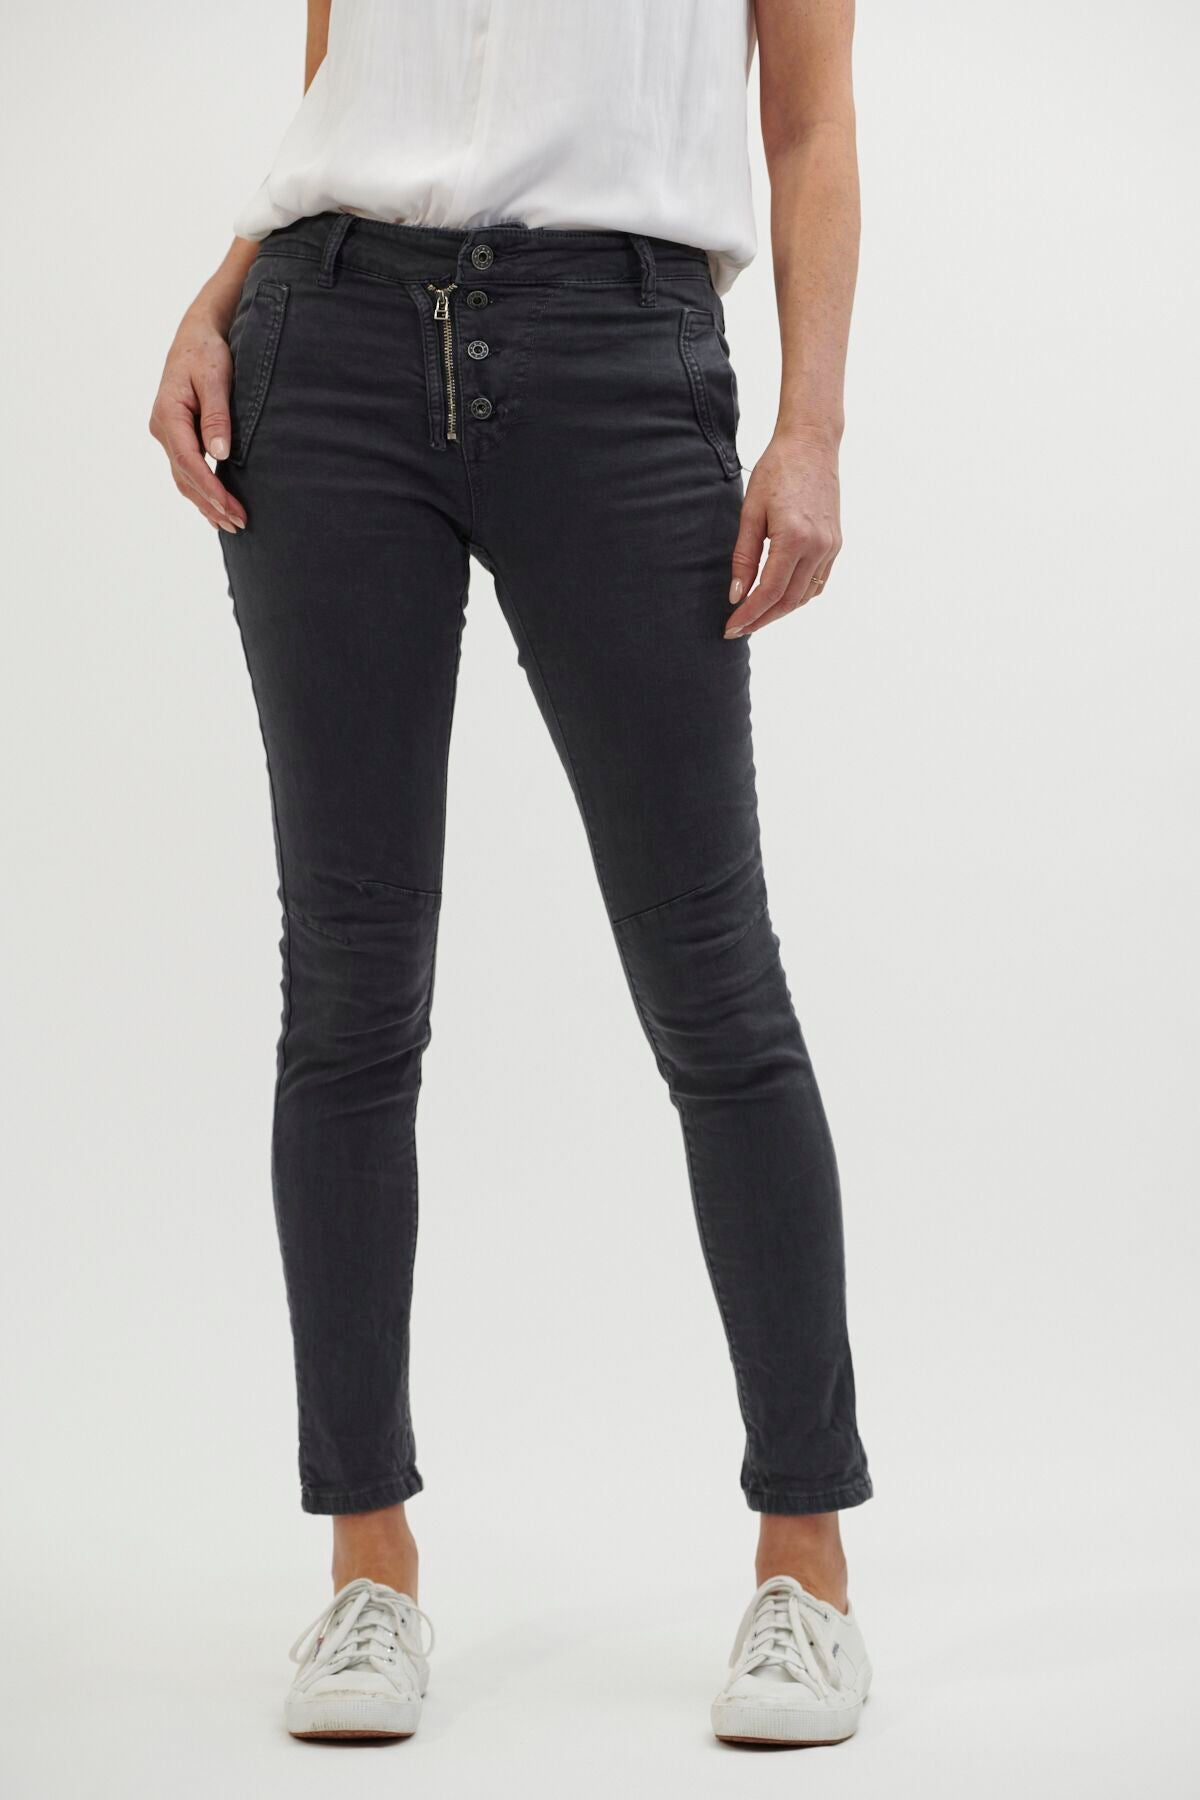 Italian Star Classic Button Jean with stretch , exposed zip and button fly. Olive and Clover